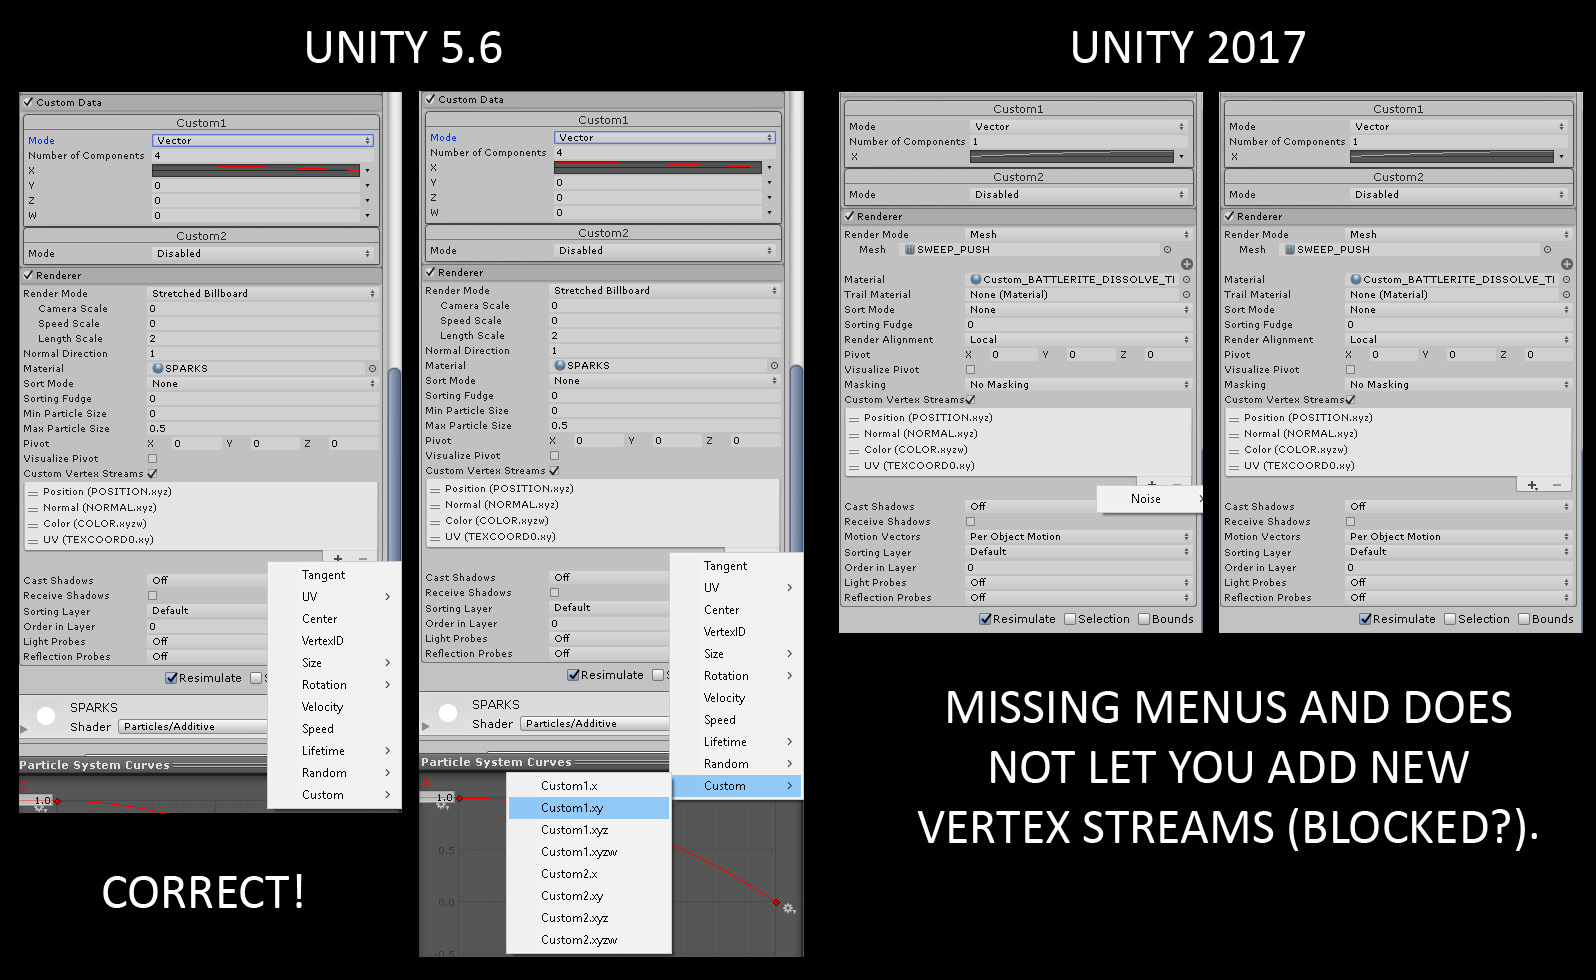 Unity [Particle] Alpha Dissolve? [[ShaderForge]] - Real Time VFX